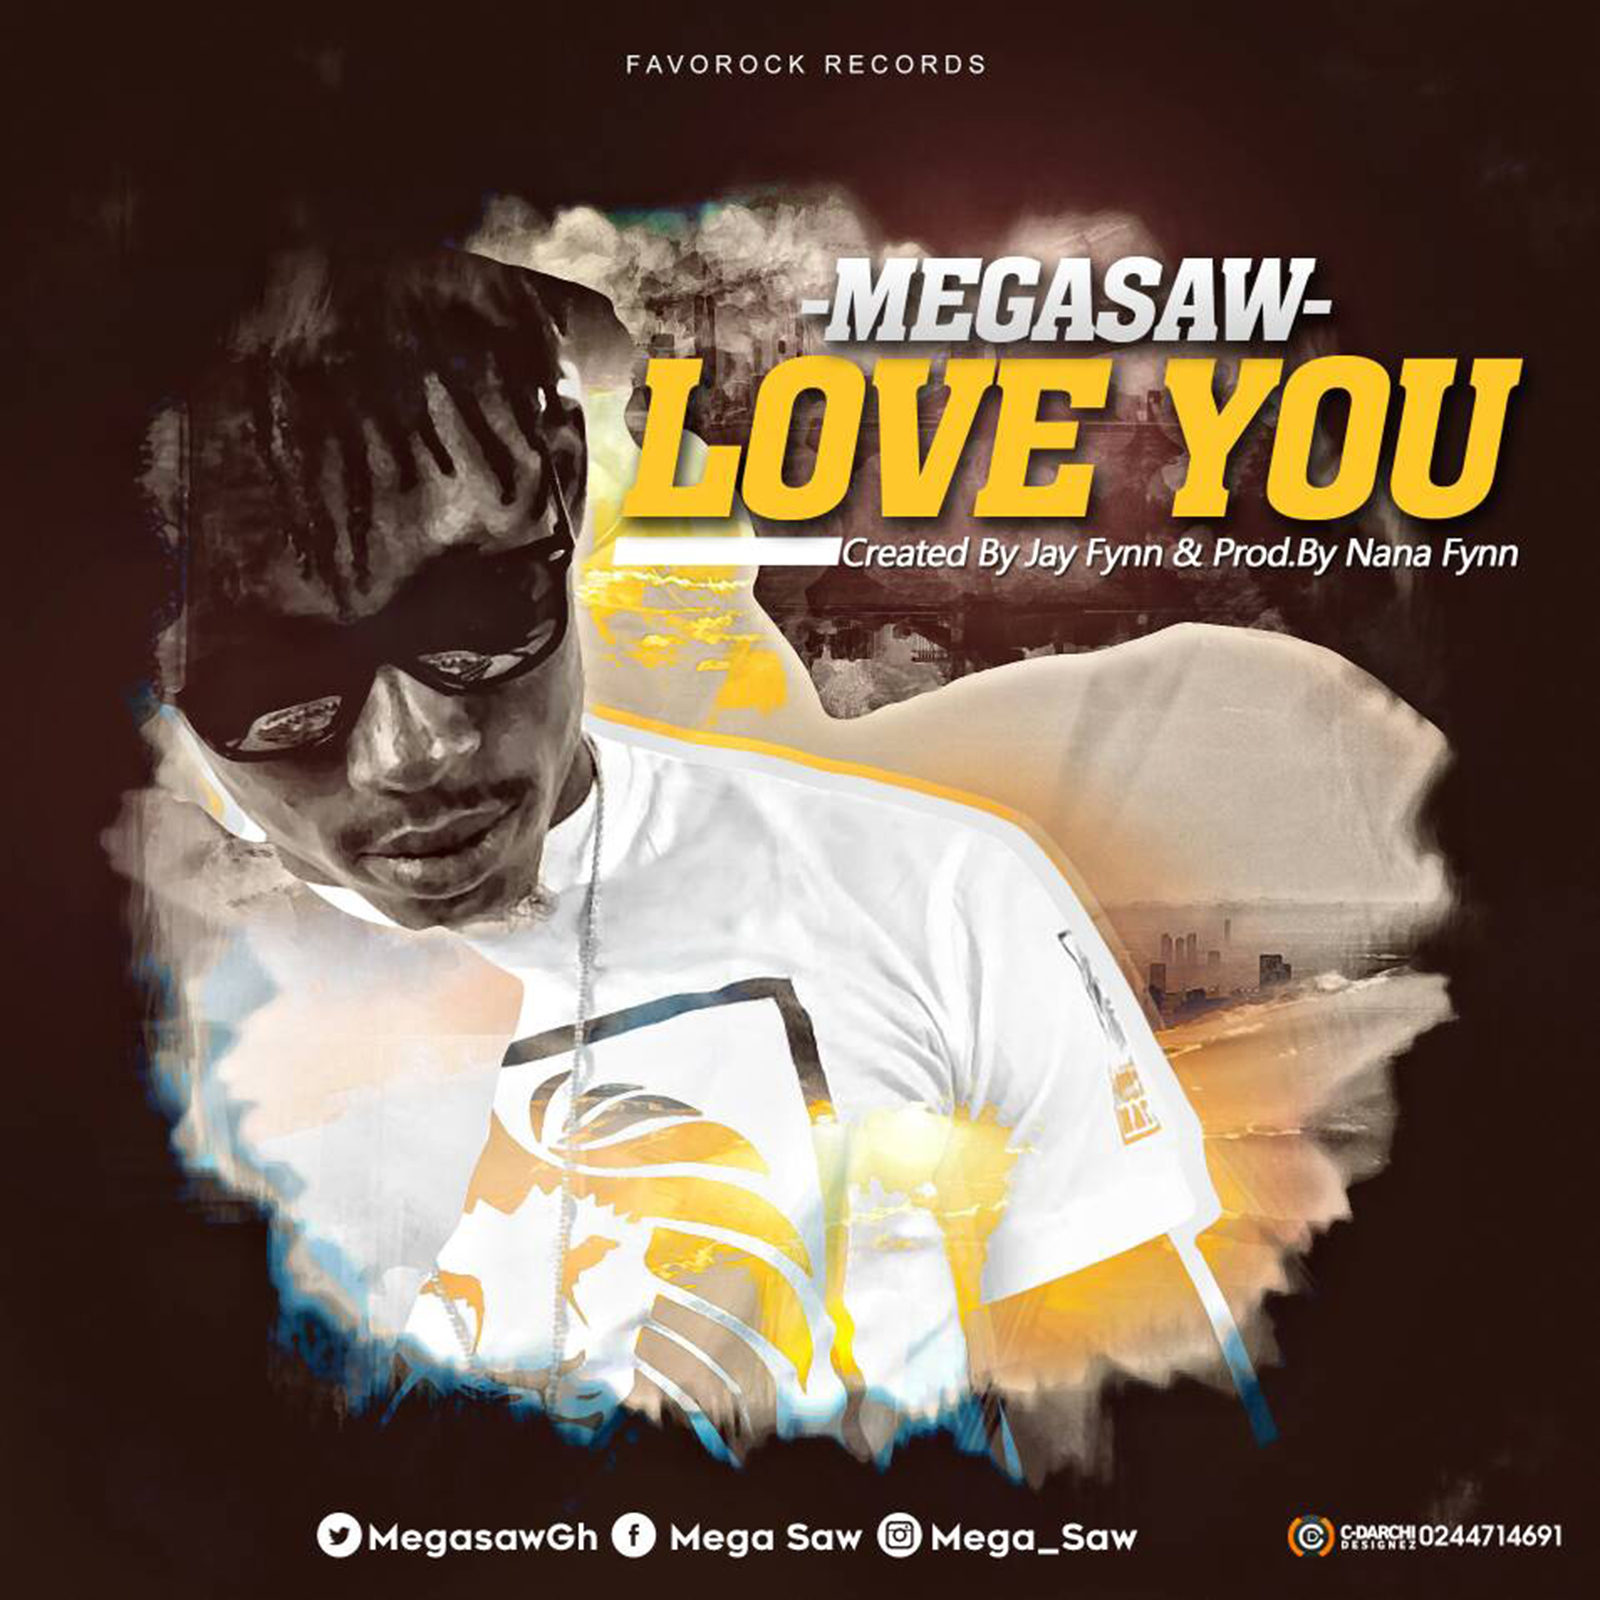 Love You by Megasaw